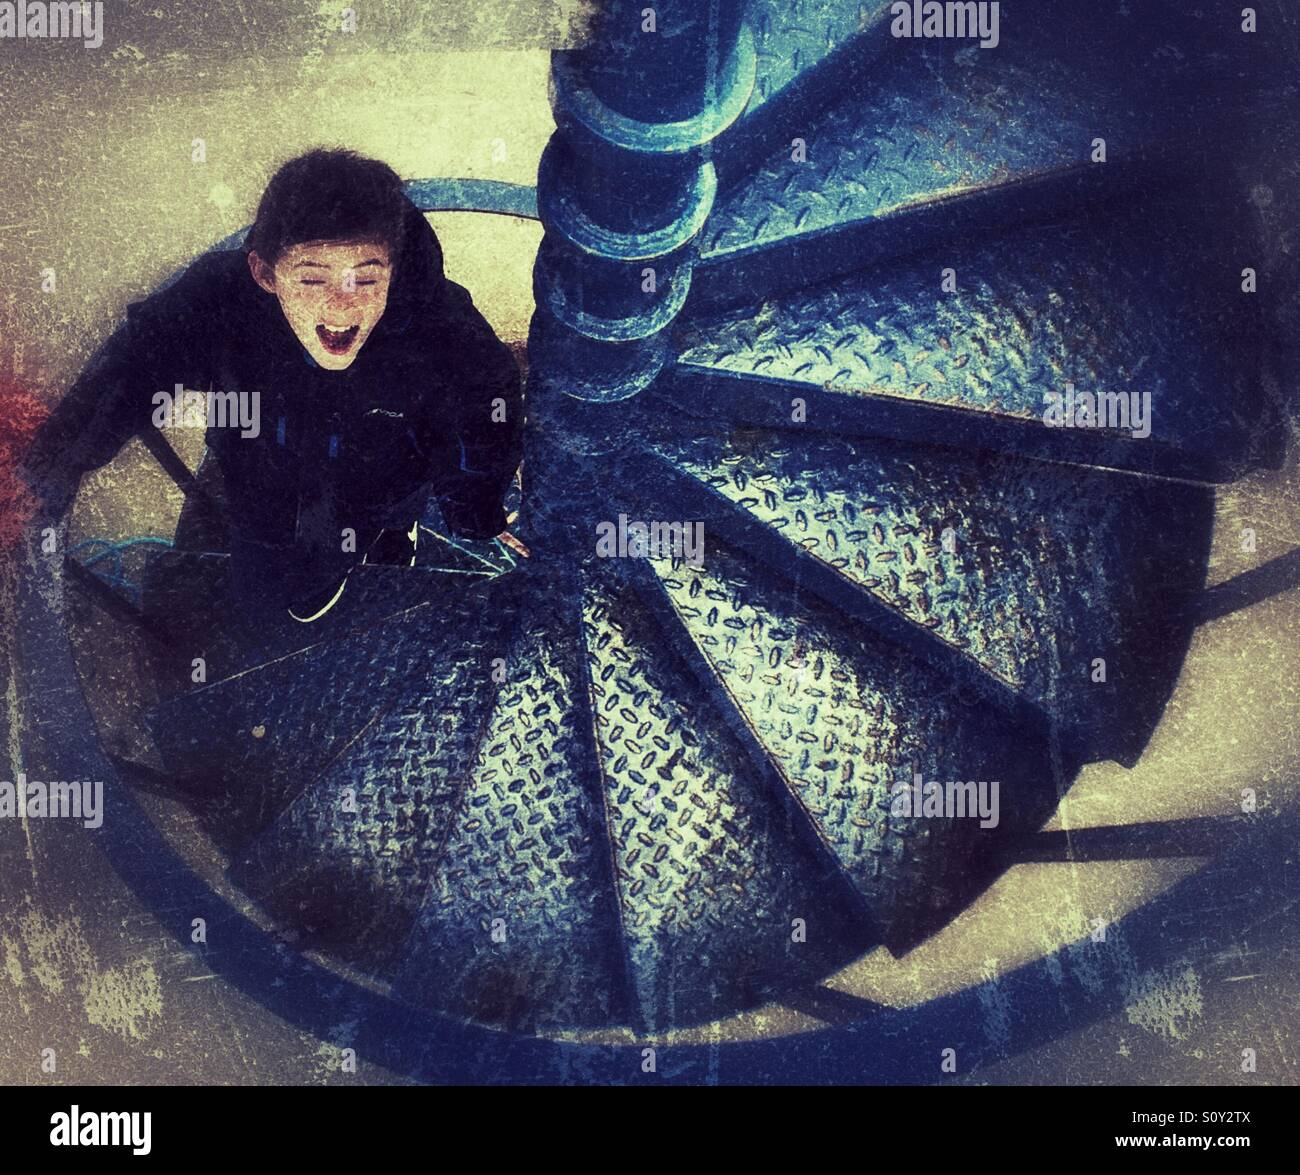 Eyes shut. Young boy walking up metal steps . - Stock Image